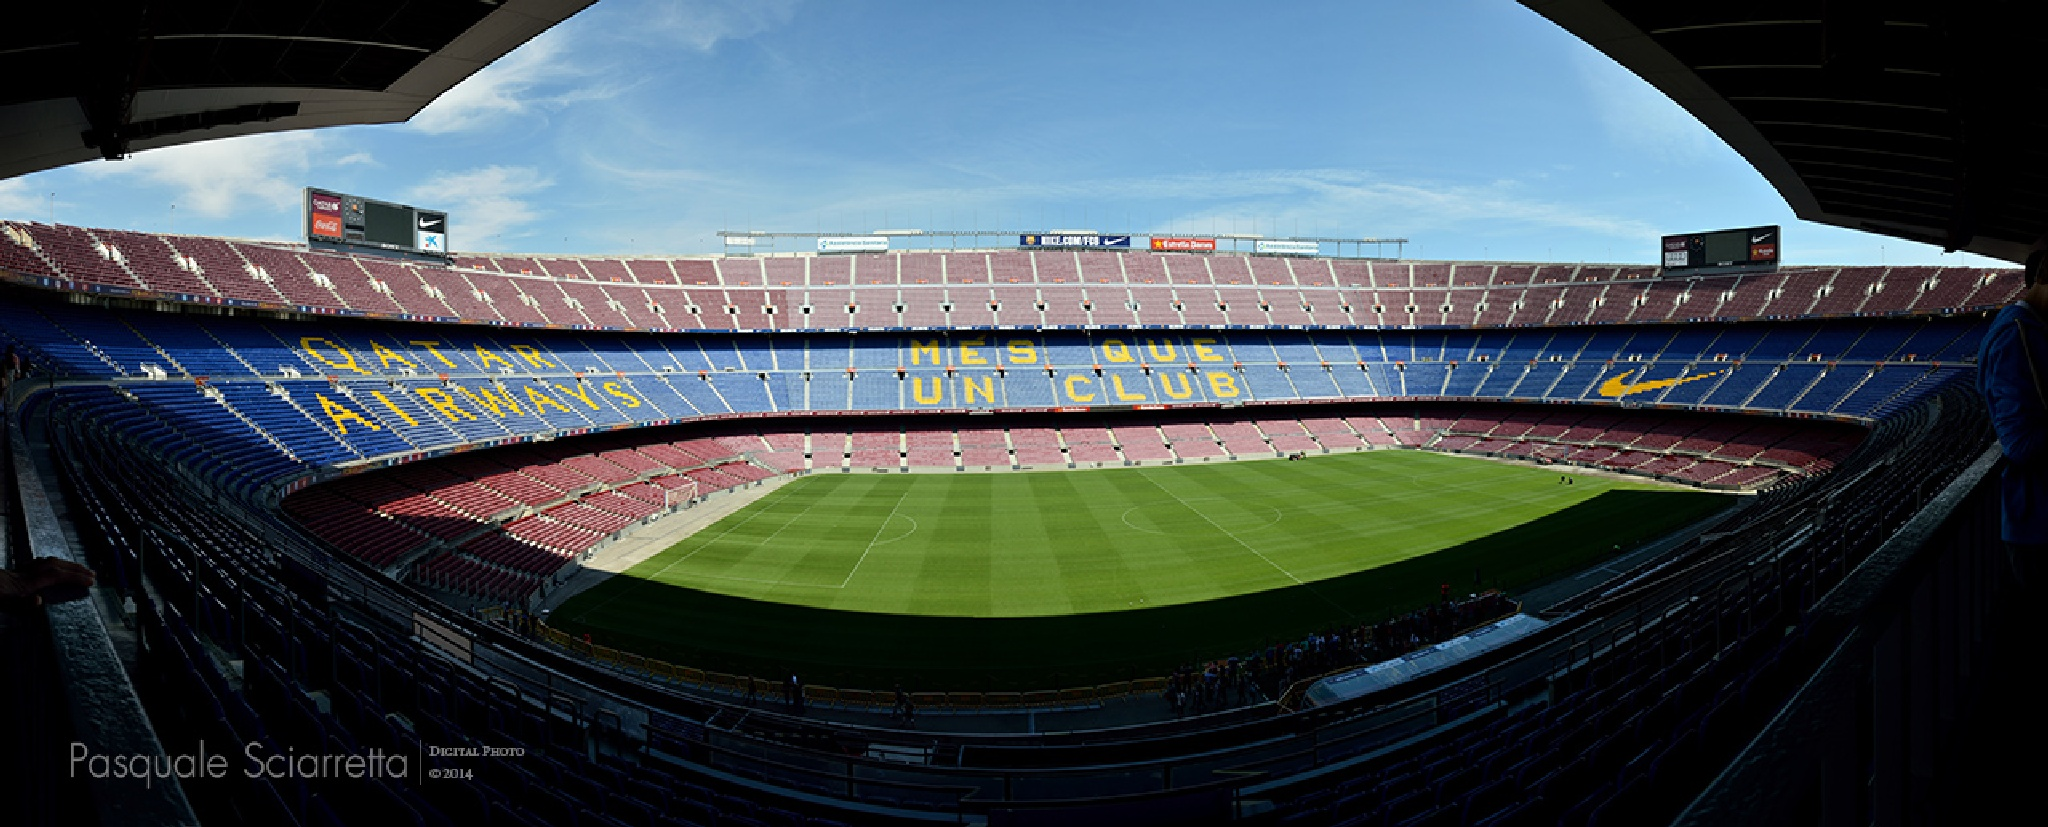 Camp Nou by pasquale s.